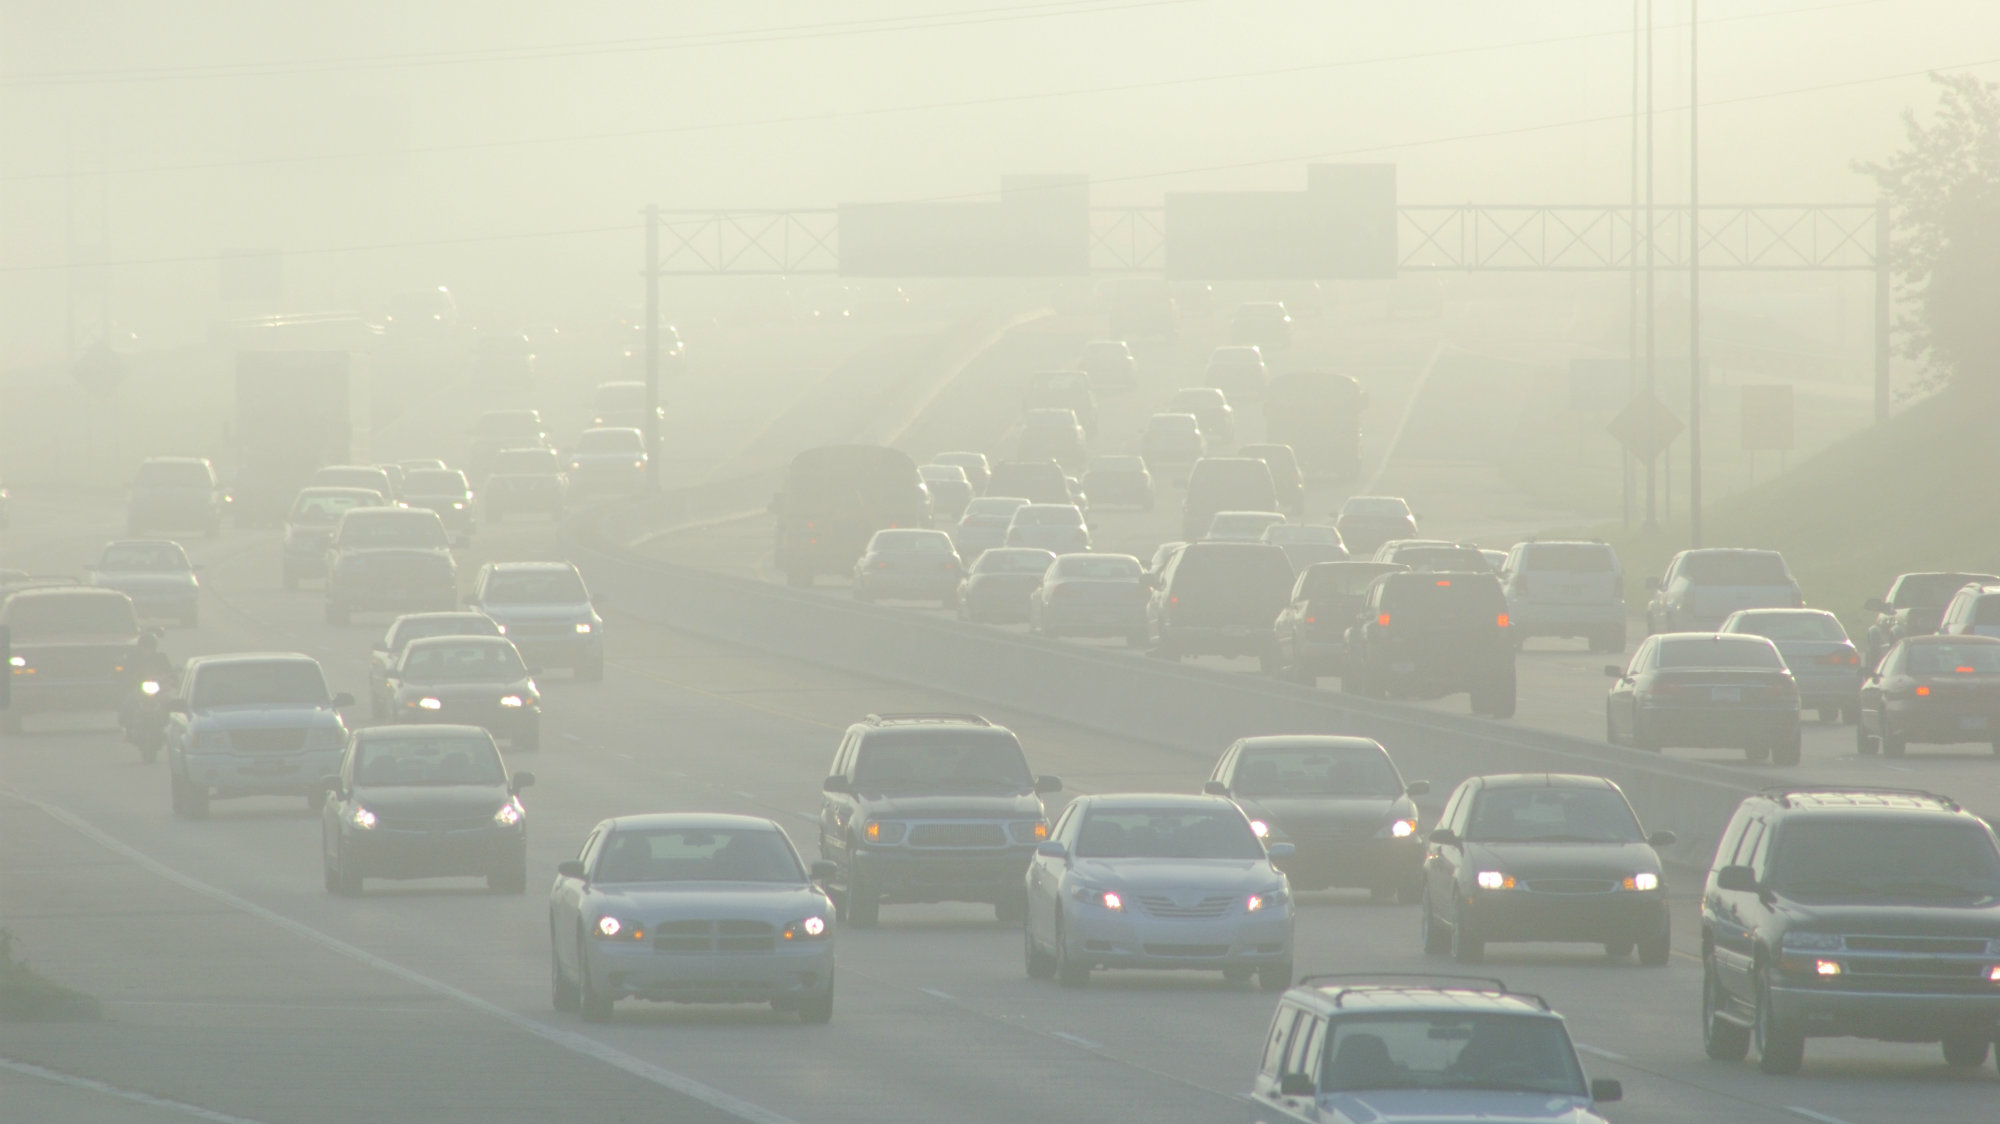 Most children in Britain are exposed to illegal air pollution levels